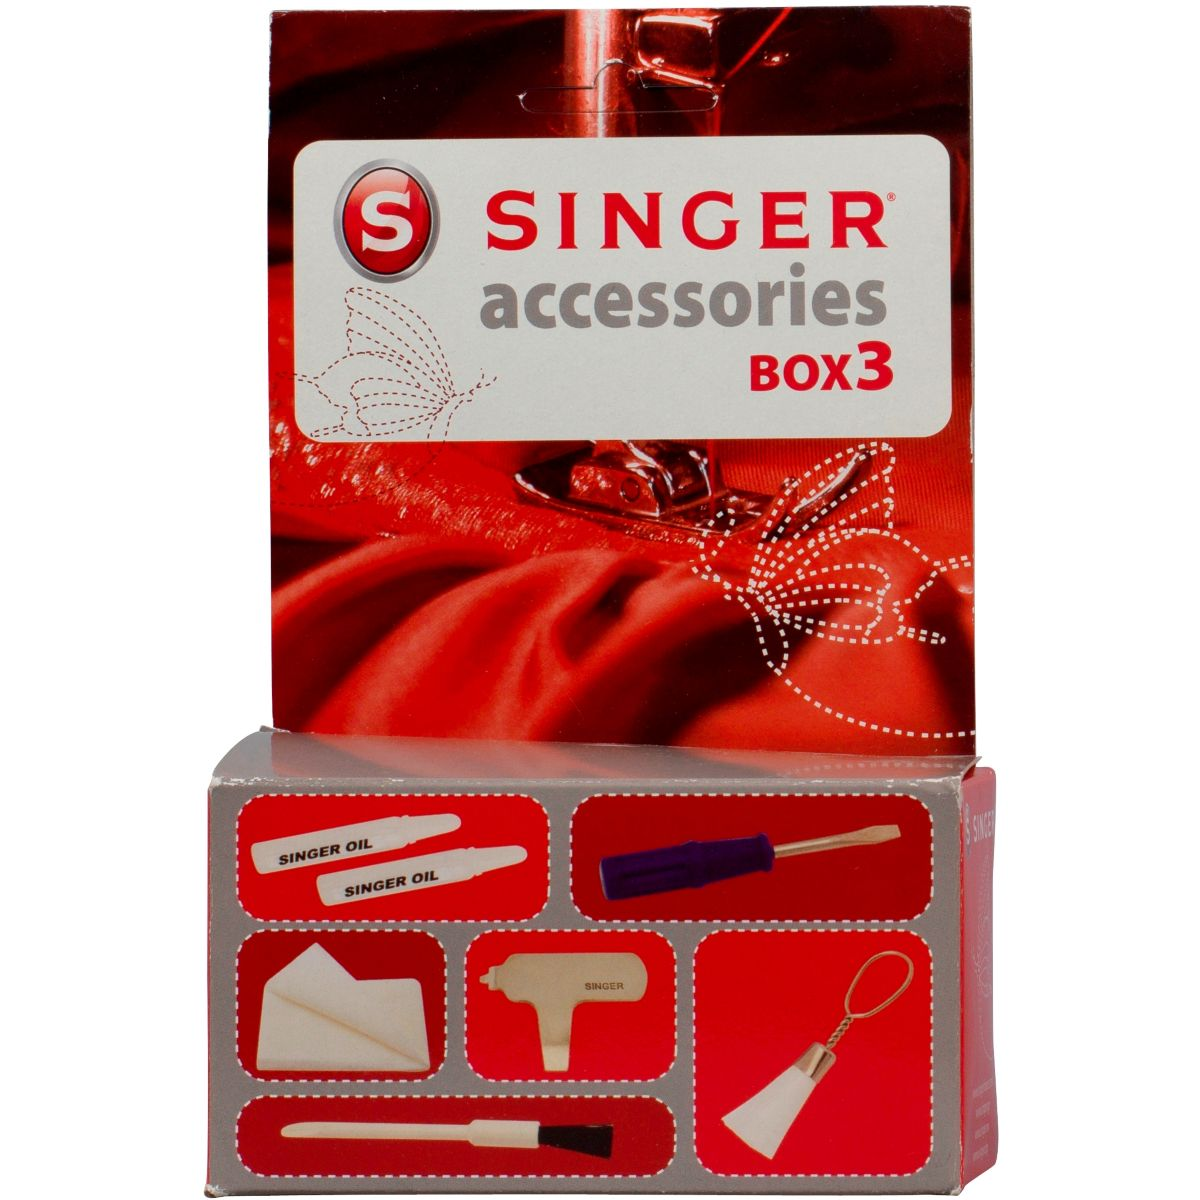 Ciseaux SINGER Box3 (photo)